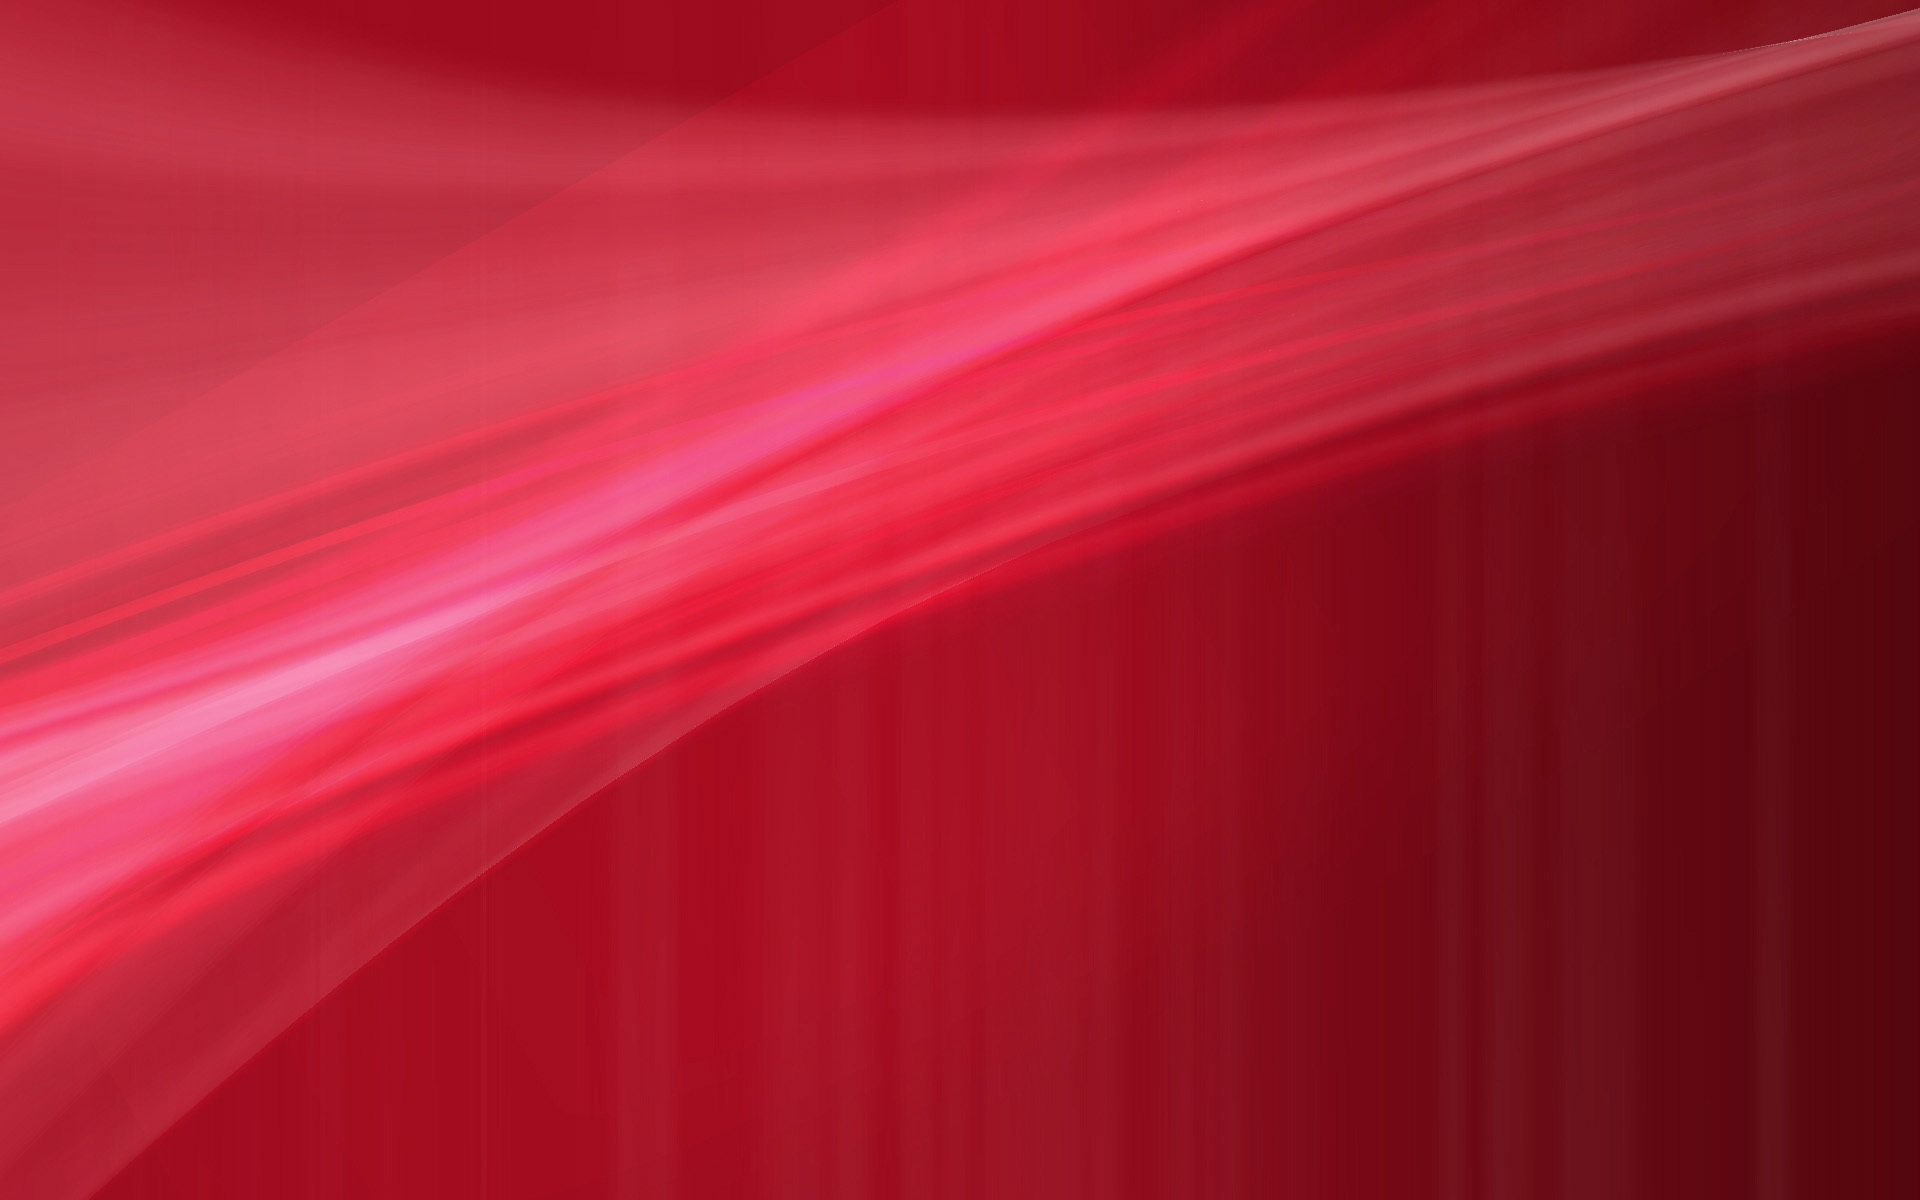 Red Abstract In Hd Desktop 162170 Wallpaper wallpaper